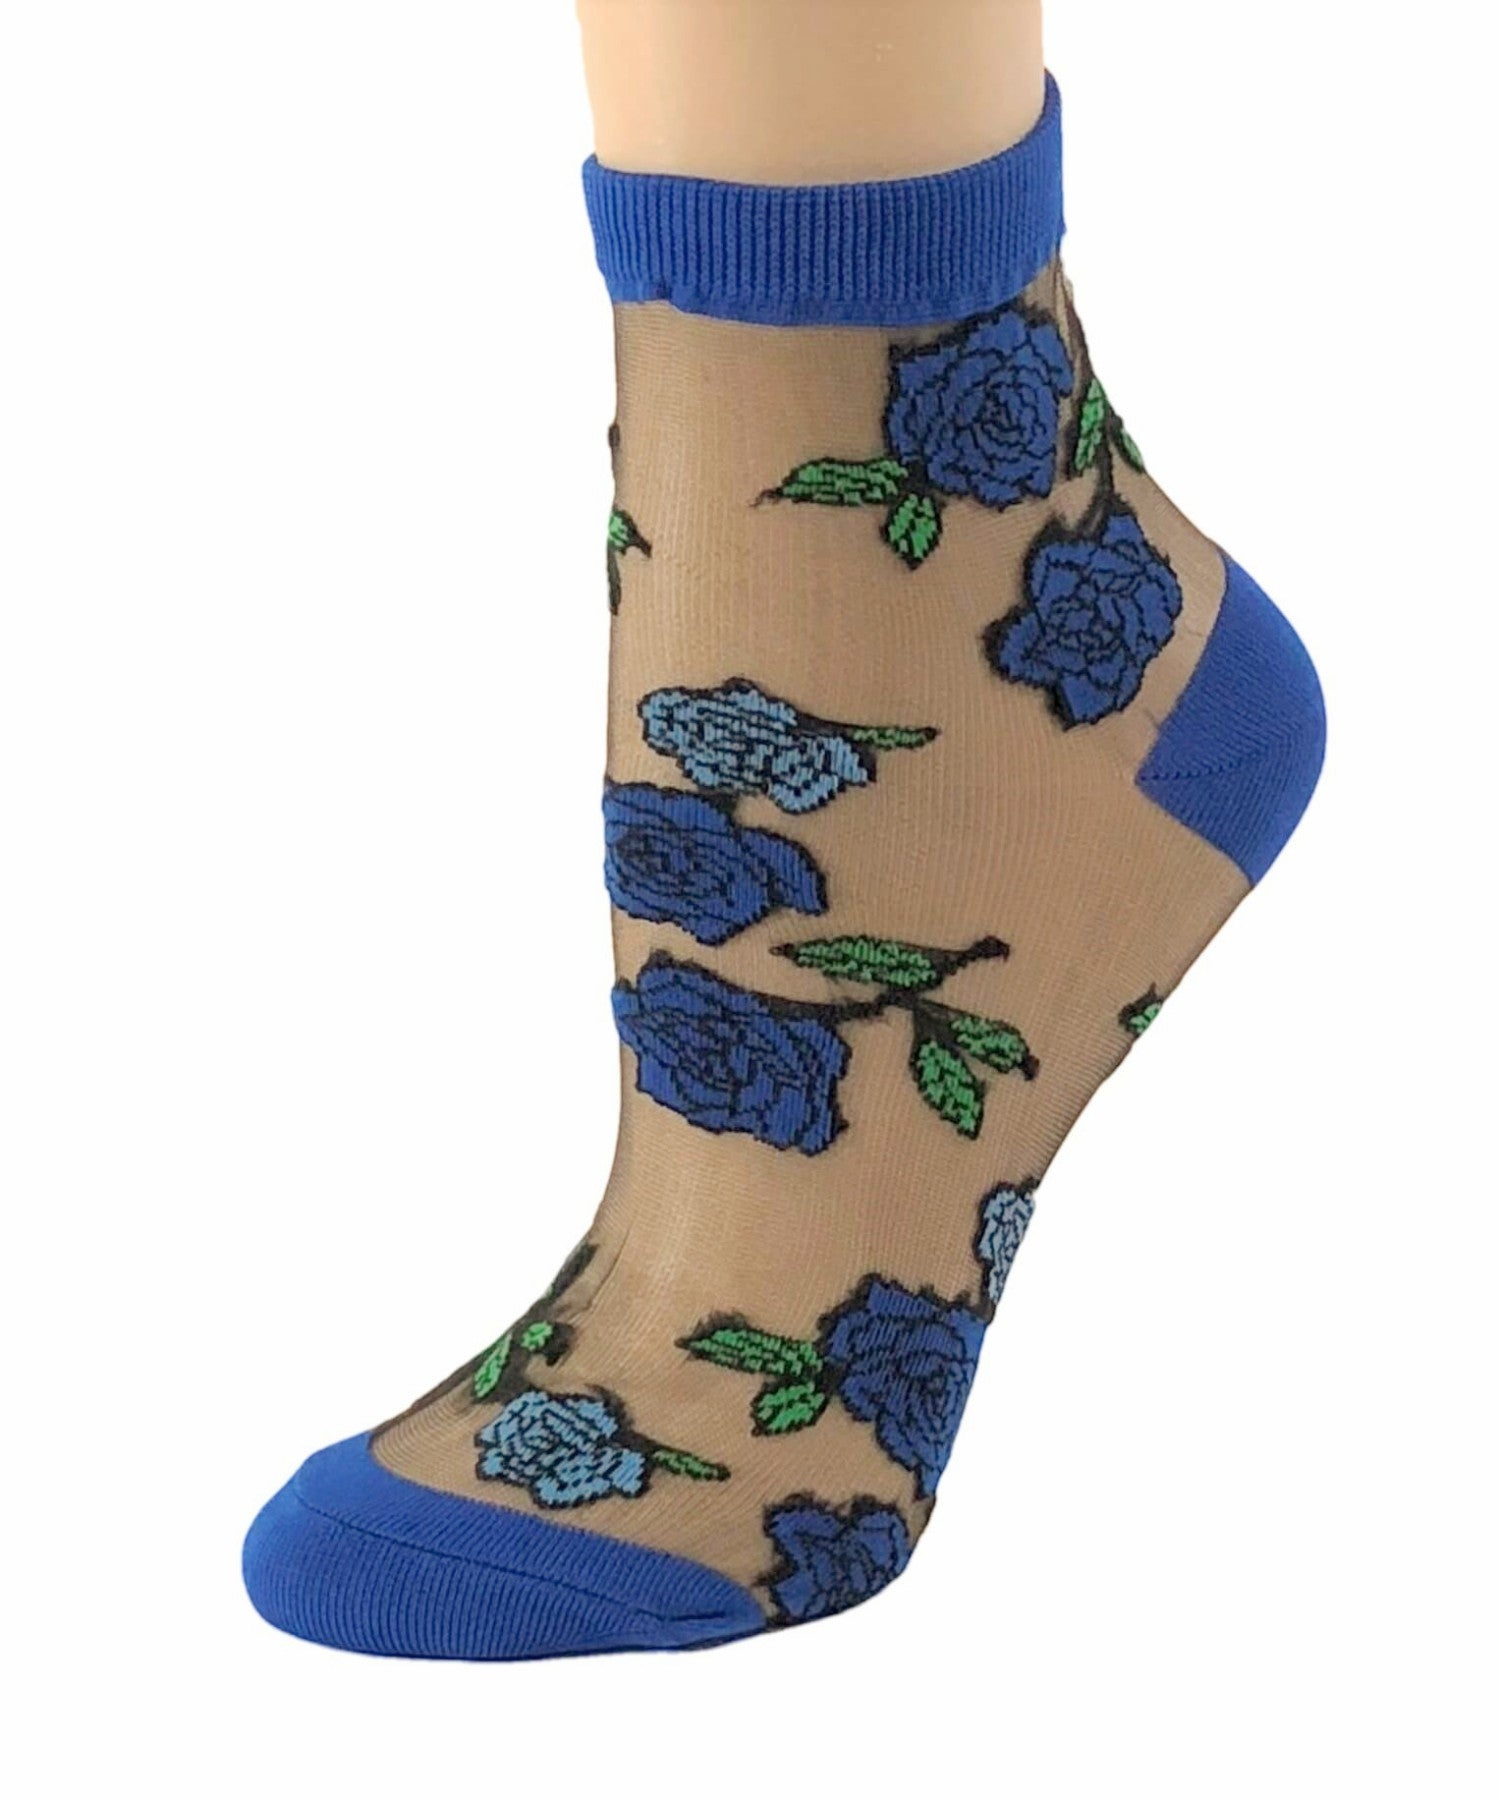 Sharp Blue Roses Sheer Socks - Global Trendz Fashion®